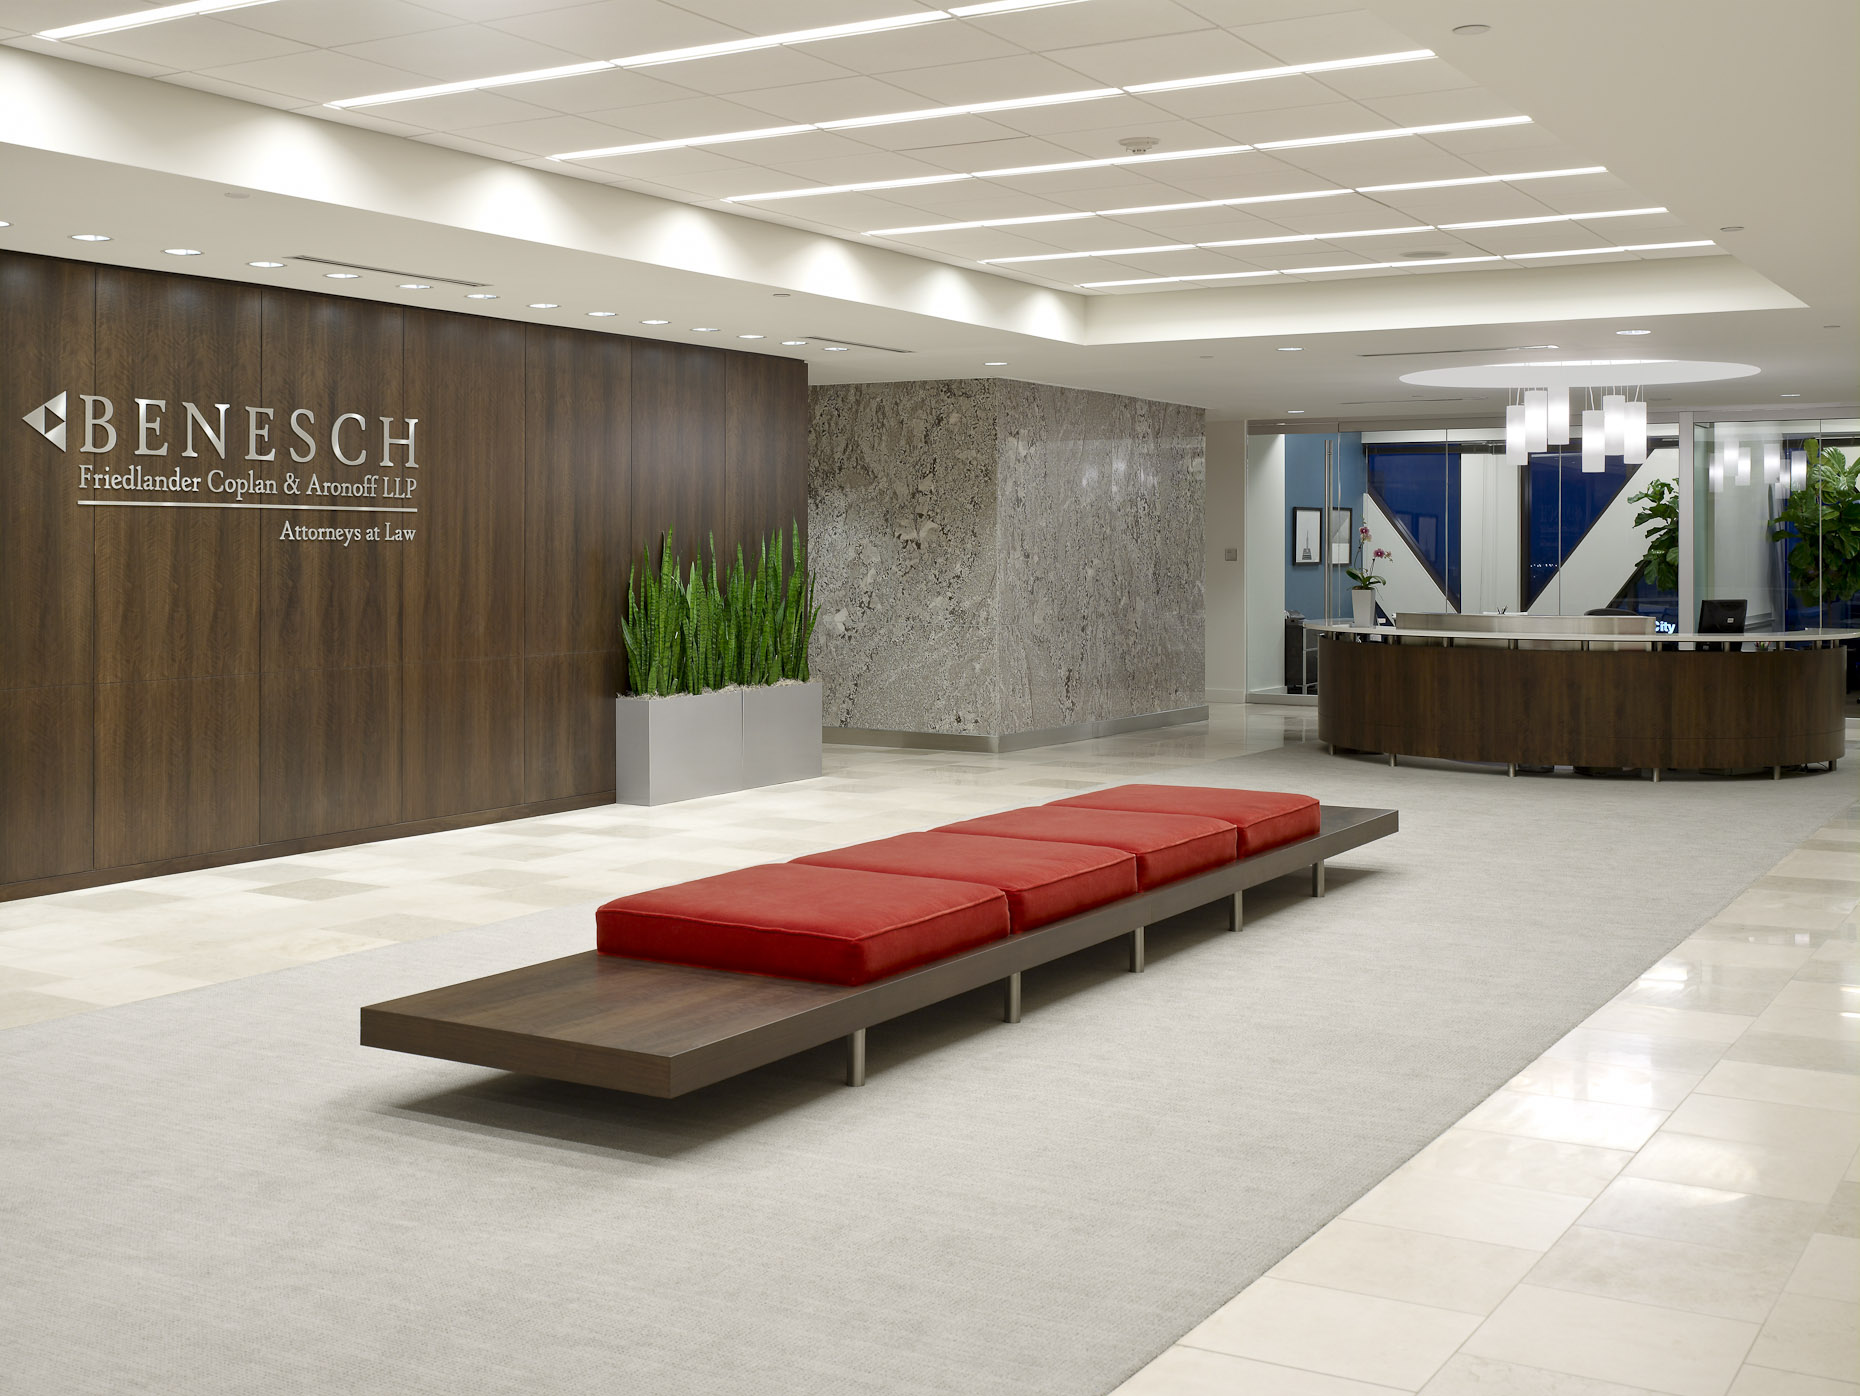 Behnesh Friedlander Coplan & Aronoff LLP by Higley Construction Company